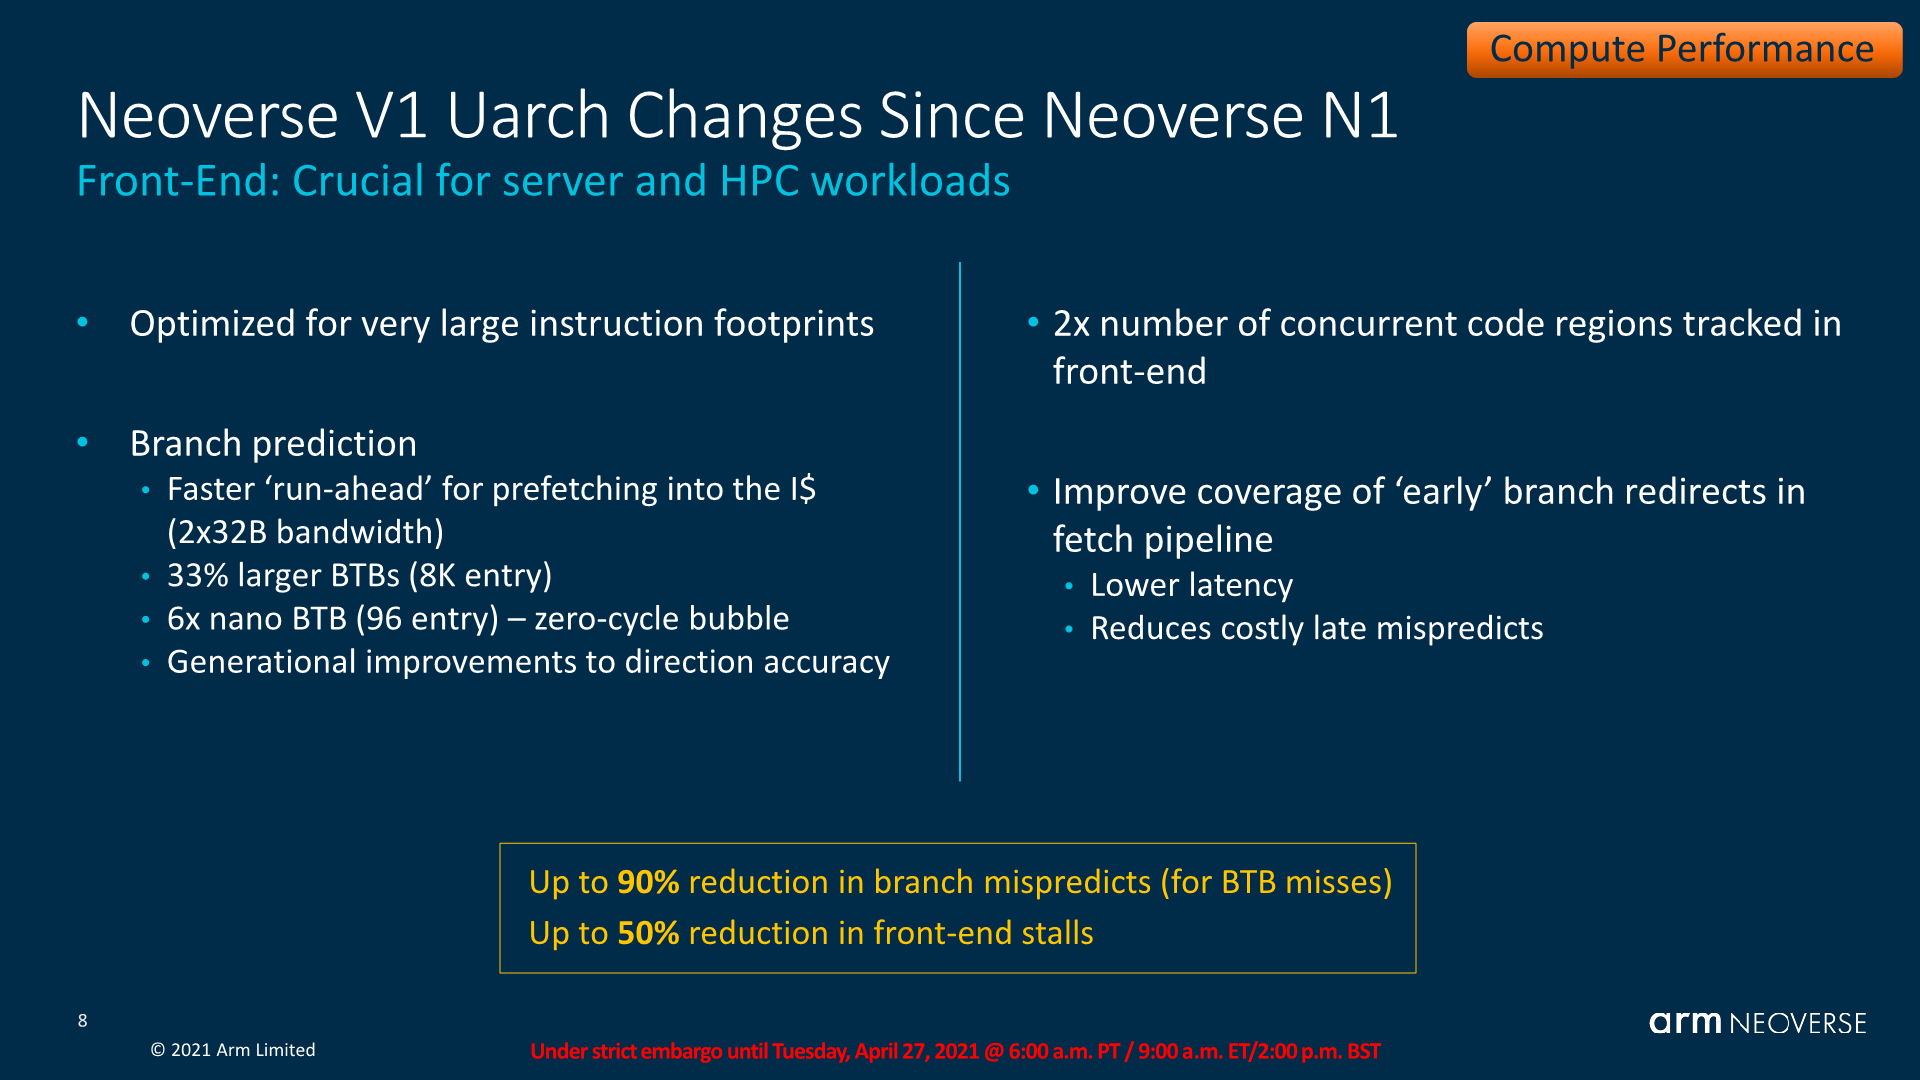 ARM Neoverse V1 06